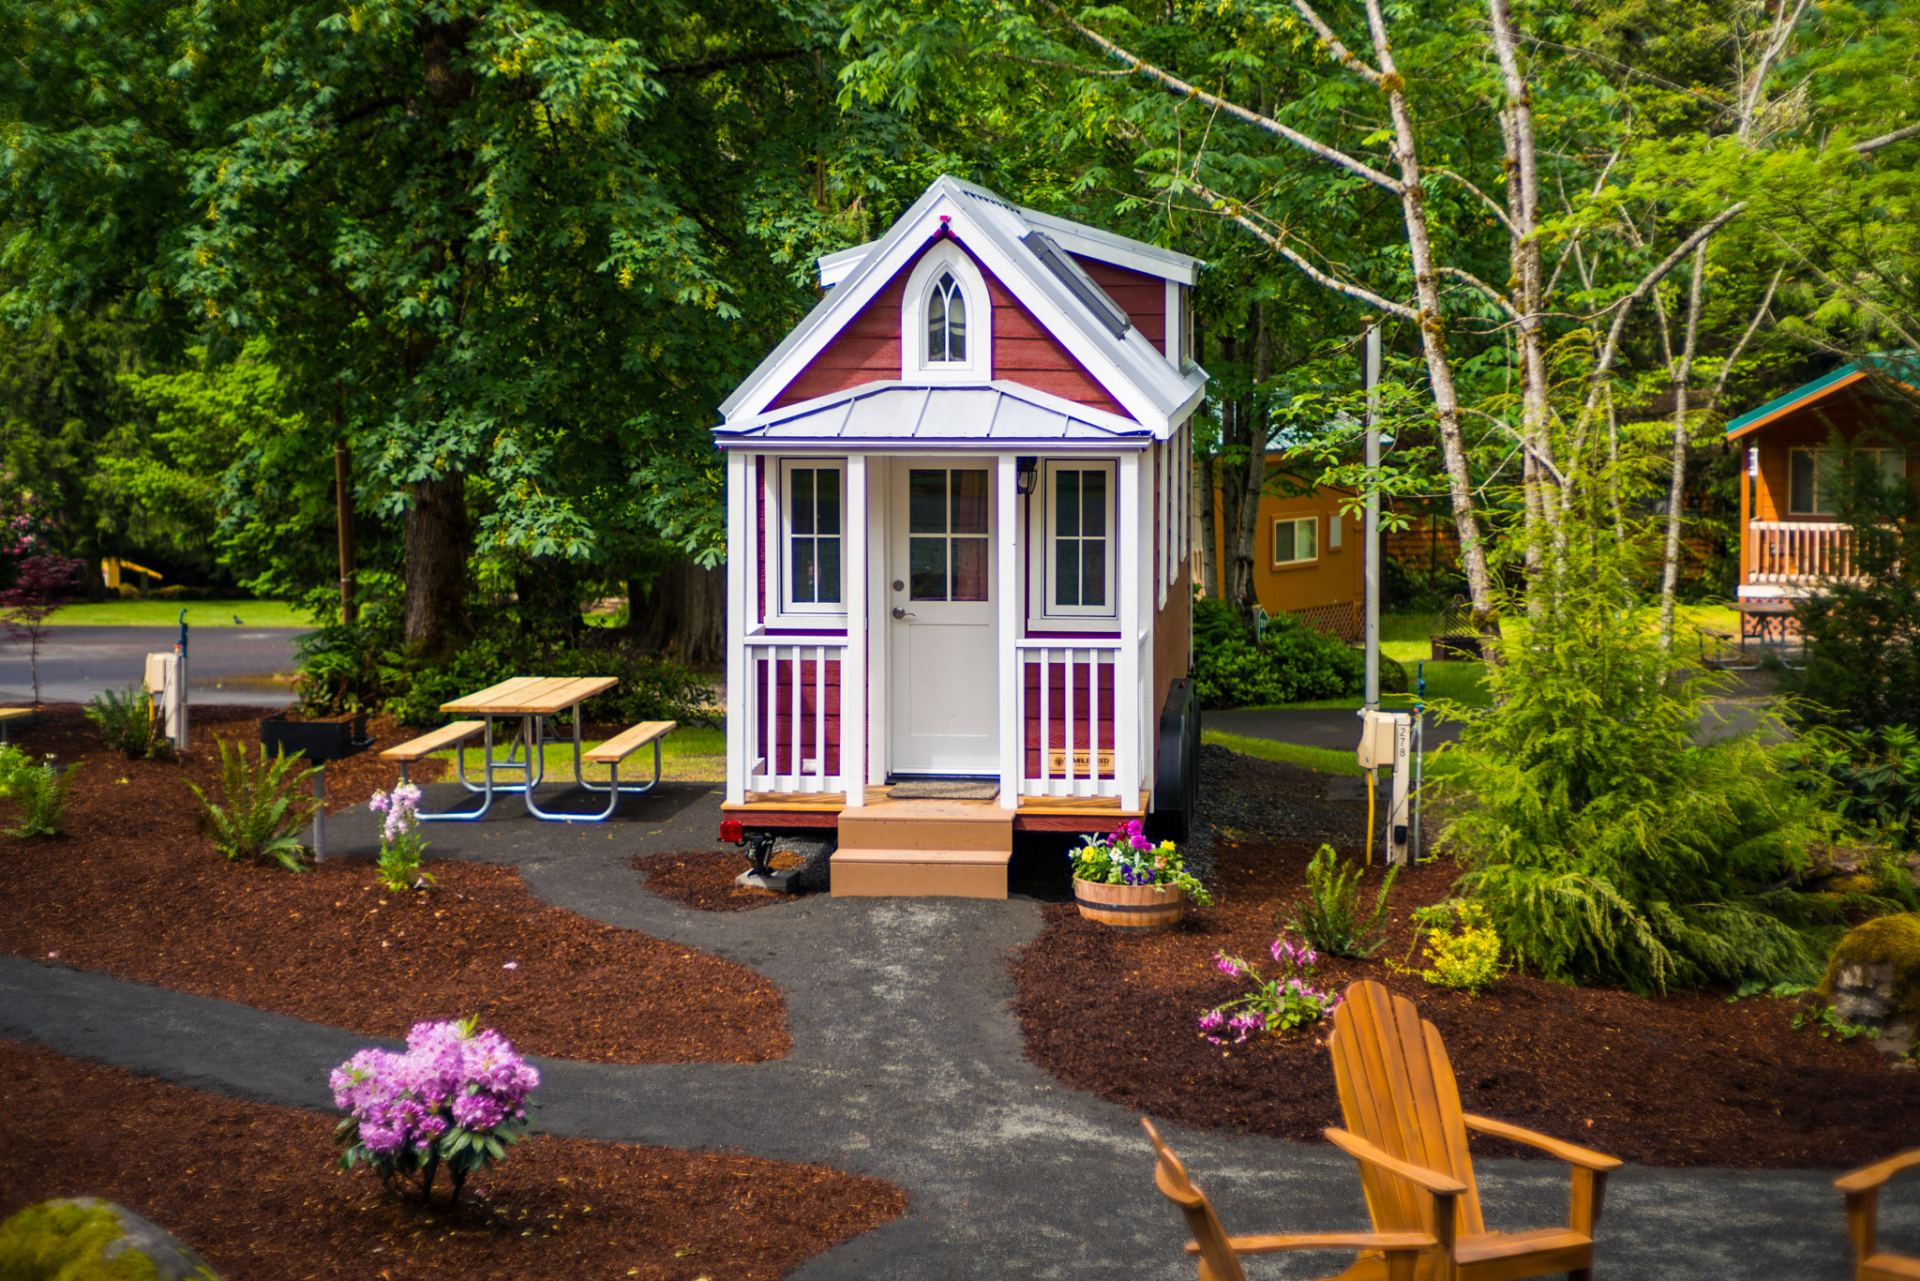 Mt hood tiny house village scarlett tumbleweed 0006 for Tumbleweed houses